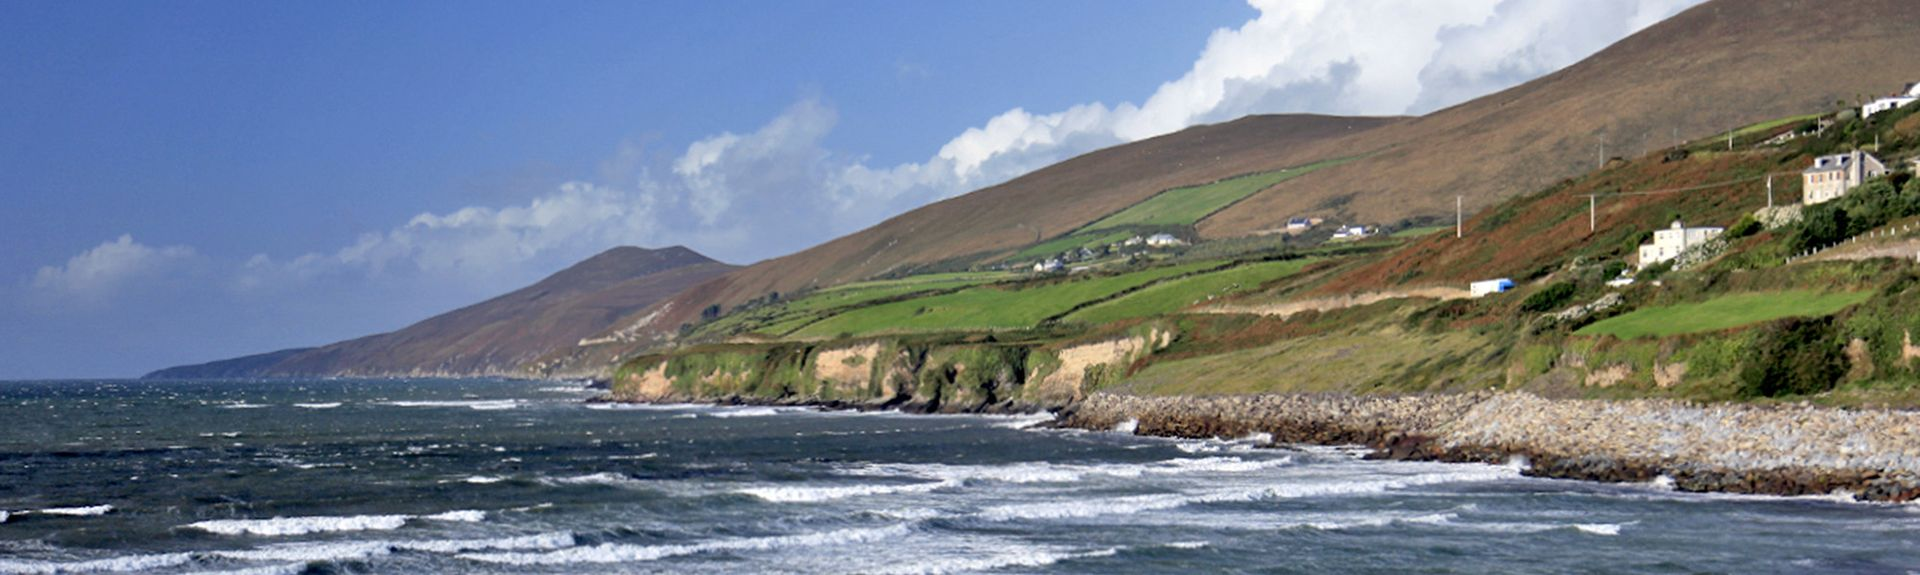 Tralee, County Kerry, Ireland